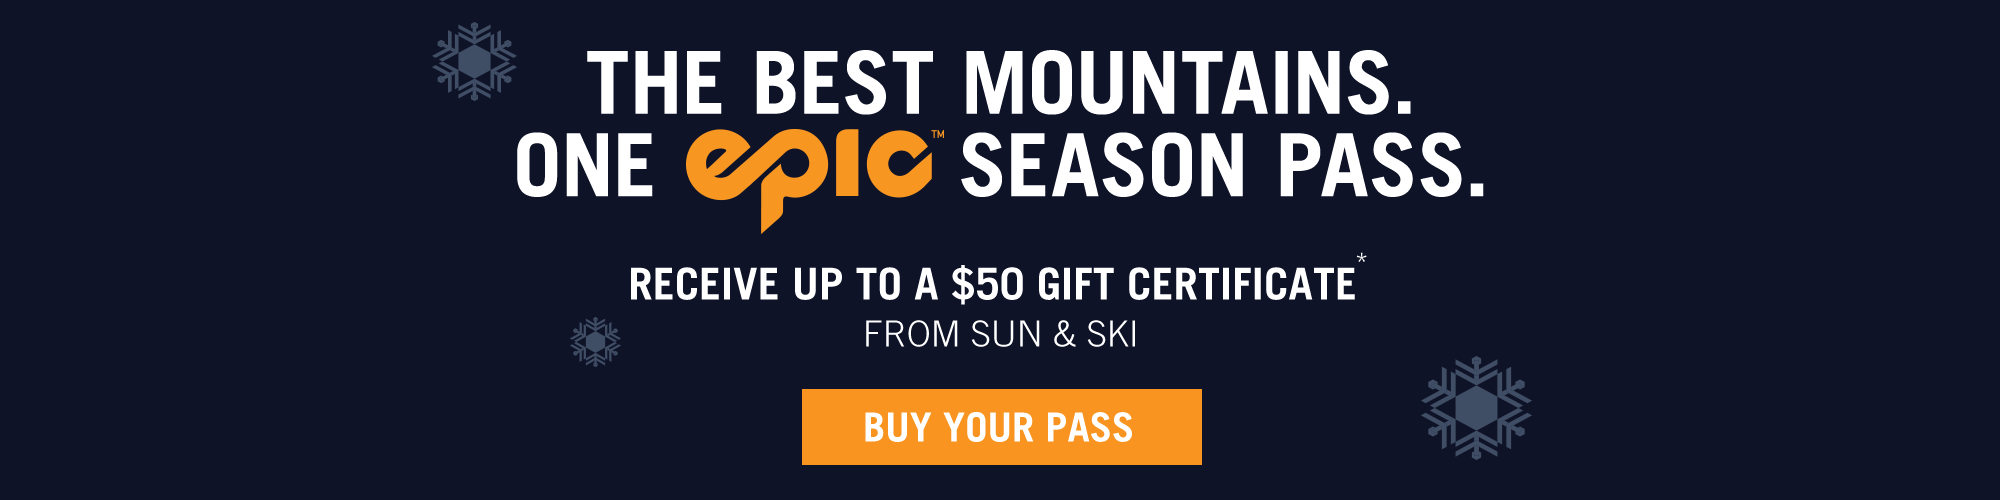 The Best Mountains. One Epic Season Pass. Get Your Pass Today!